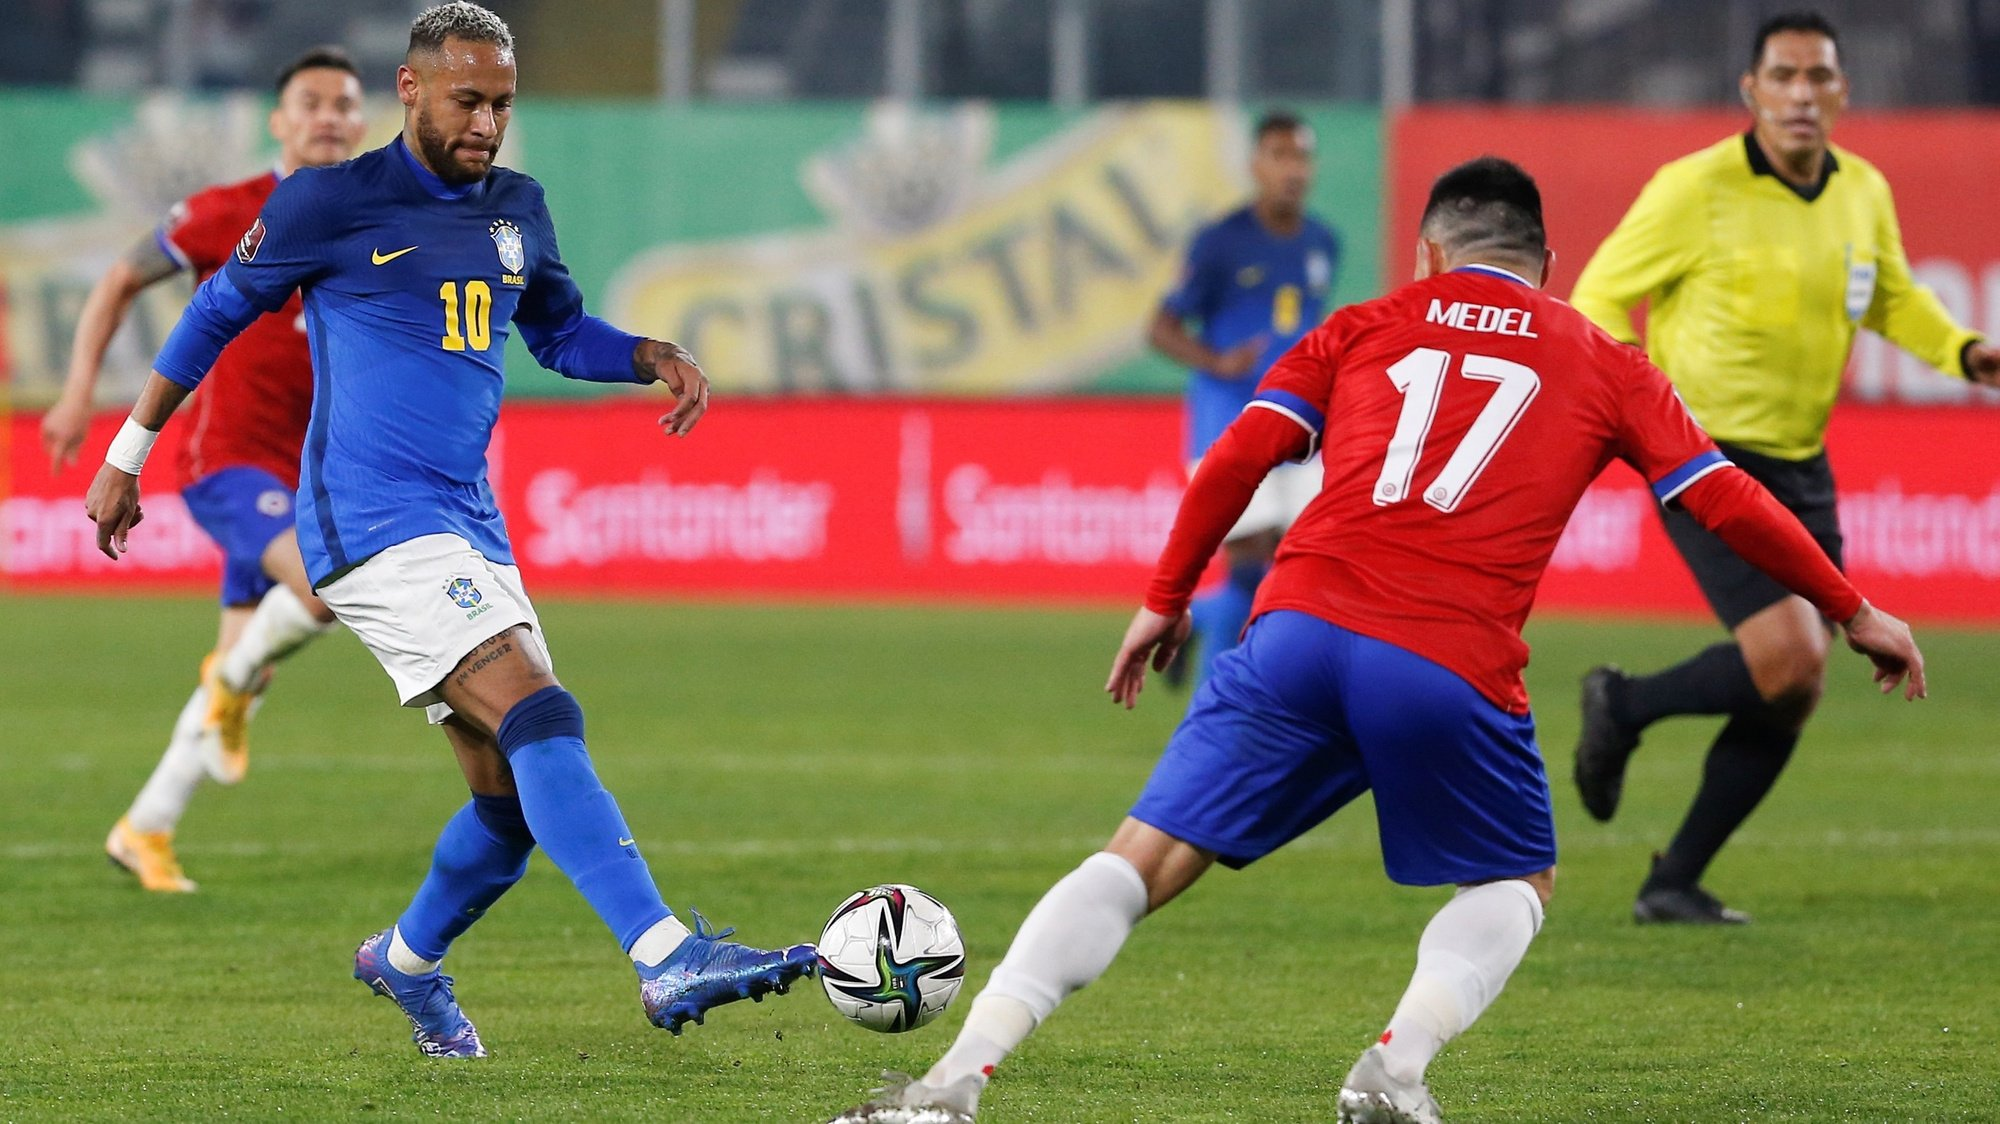 epa09444468 Chile's Gary Medel (R) in action against Brazil's Neymar Jr. (L) during the Conmebol qualifiers for the Qatar 2022 World Cup between Chile and Brazil at Monumental Stadium in Santiago, Chile, 02 September 2021.  EPA/CLAUDIO REYES / POOL